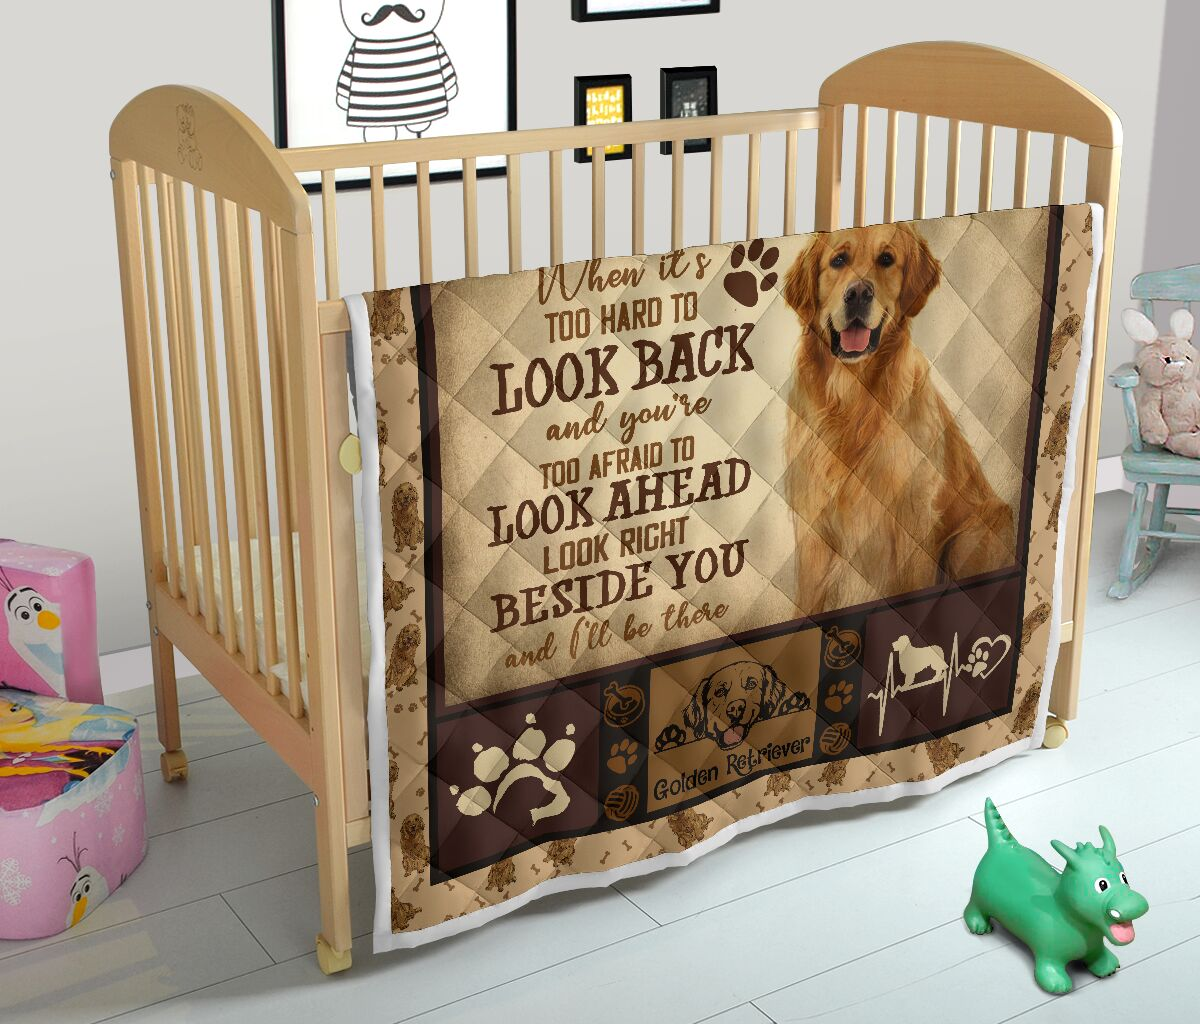 Golden Retriever when it's too hard to look back quilt blanket - picture 3